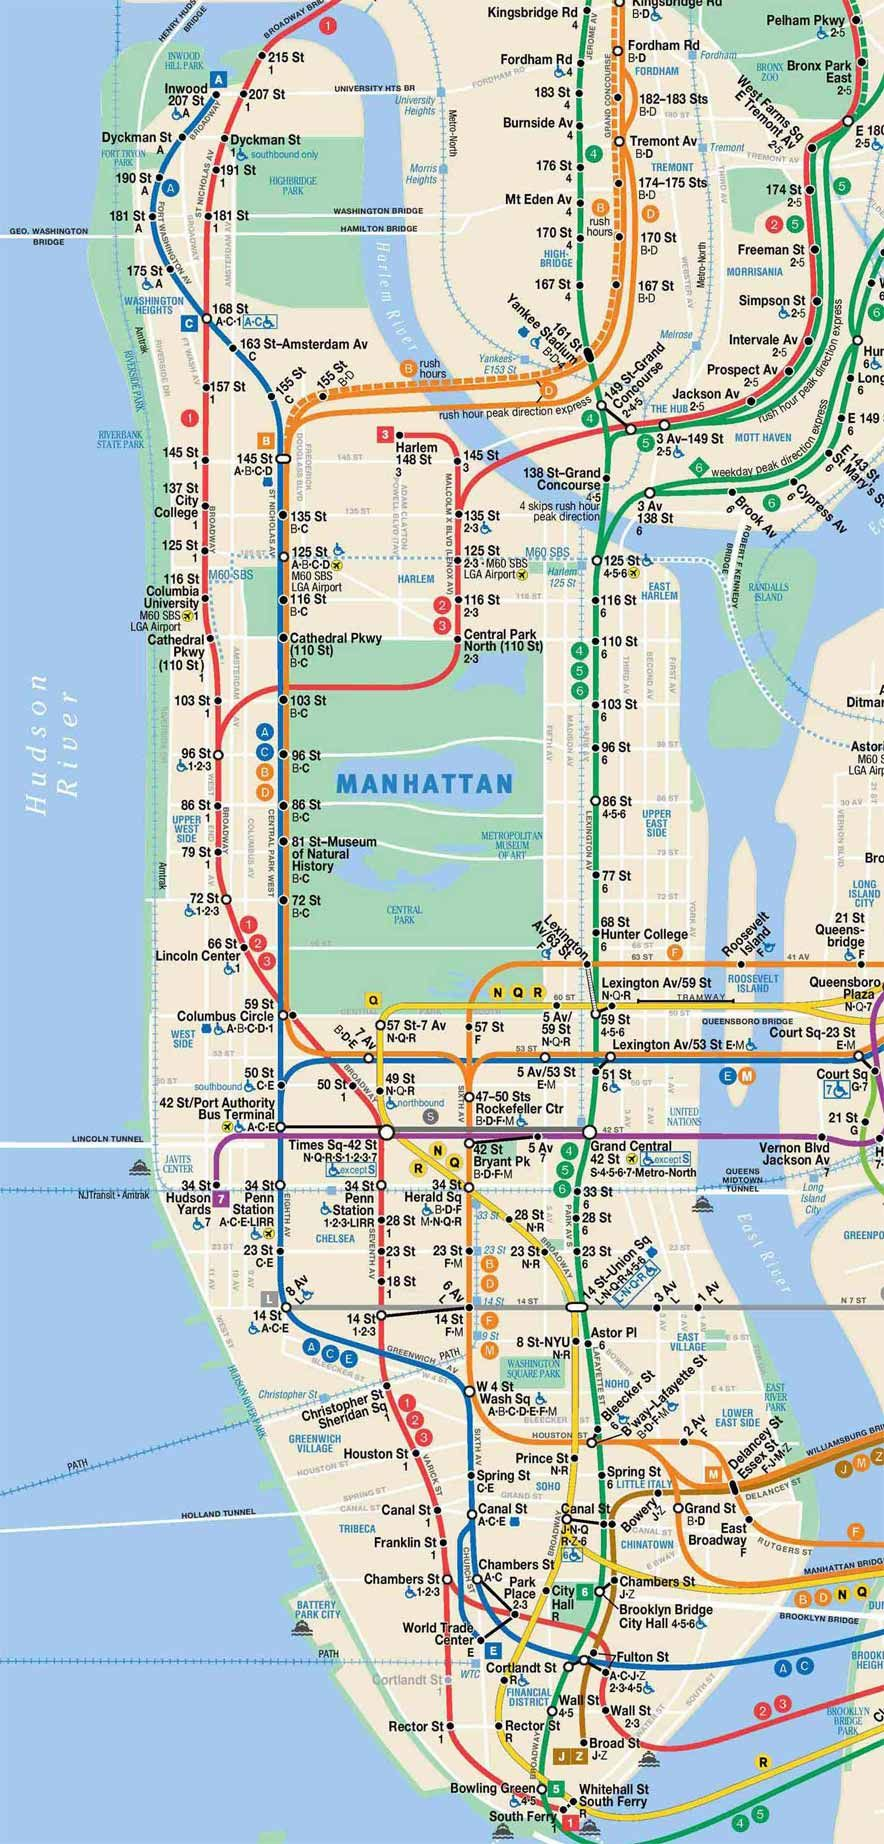 This is an image of Universal Printable Nyc Subway Maps